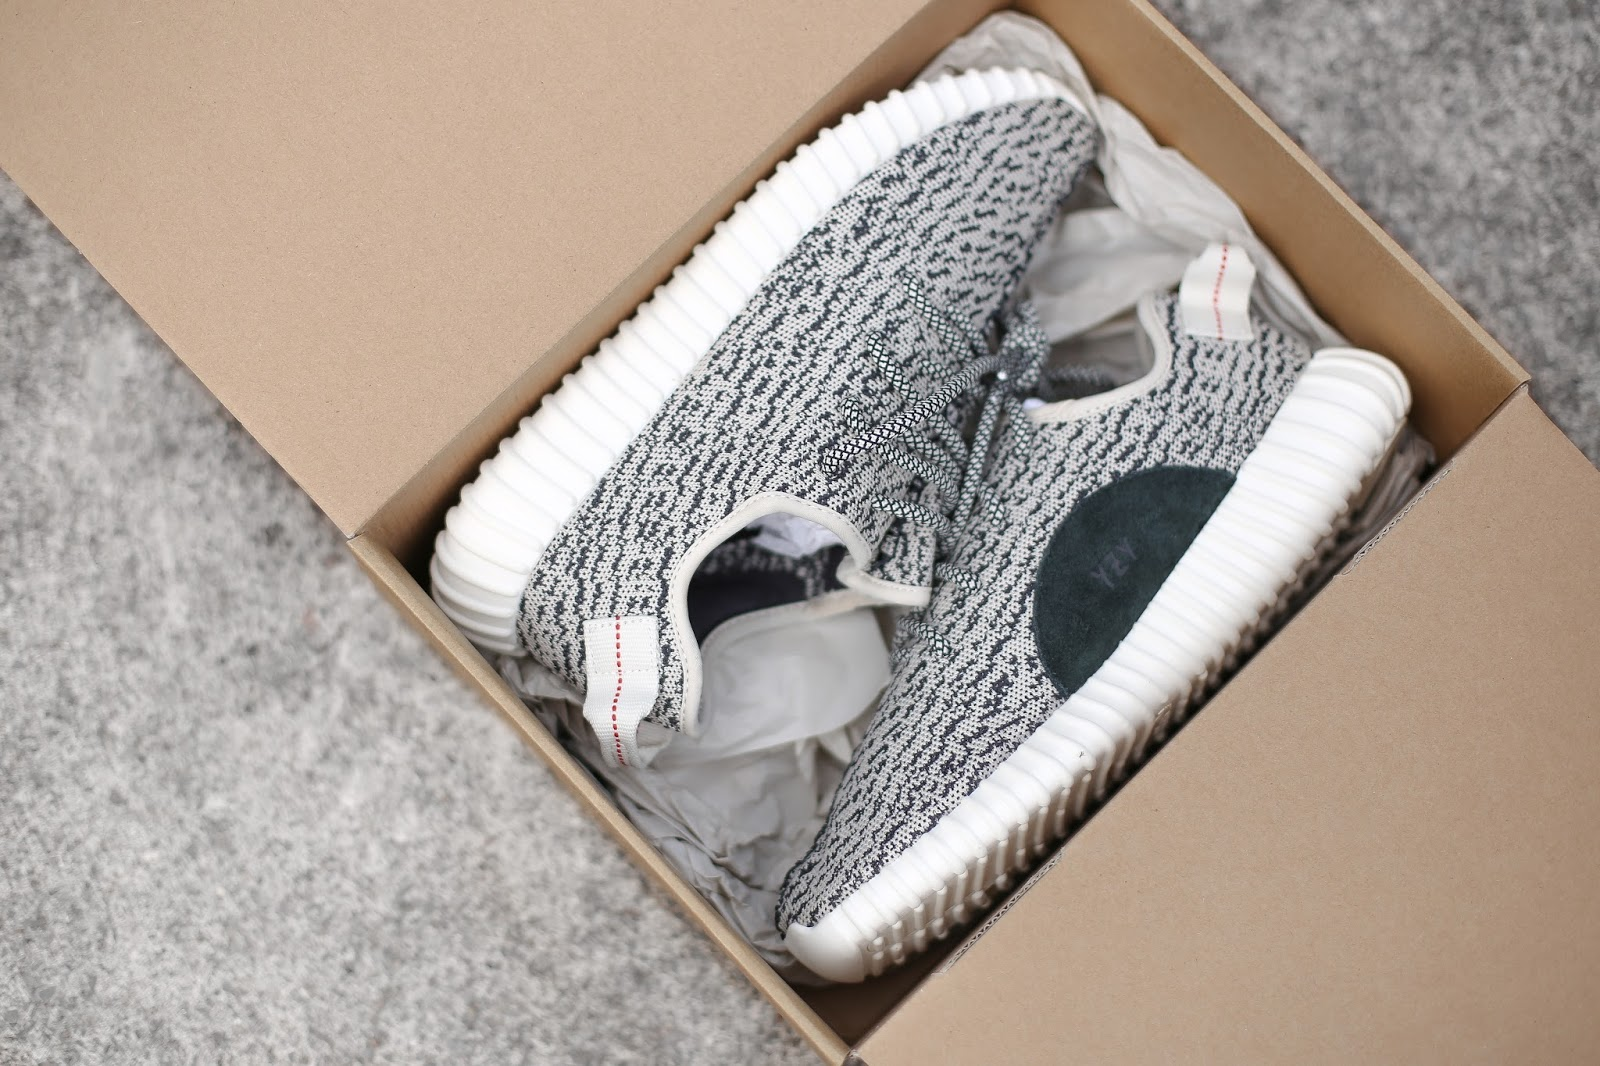 b0c16ad1a7c56 yeezy ultra boost on feet yeezy boost 350 turtle dove outfits